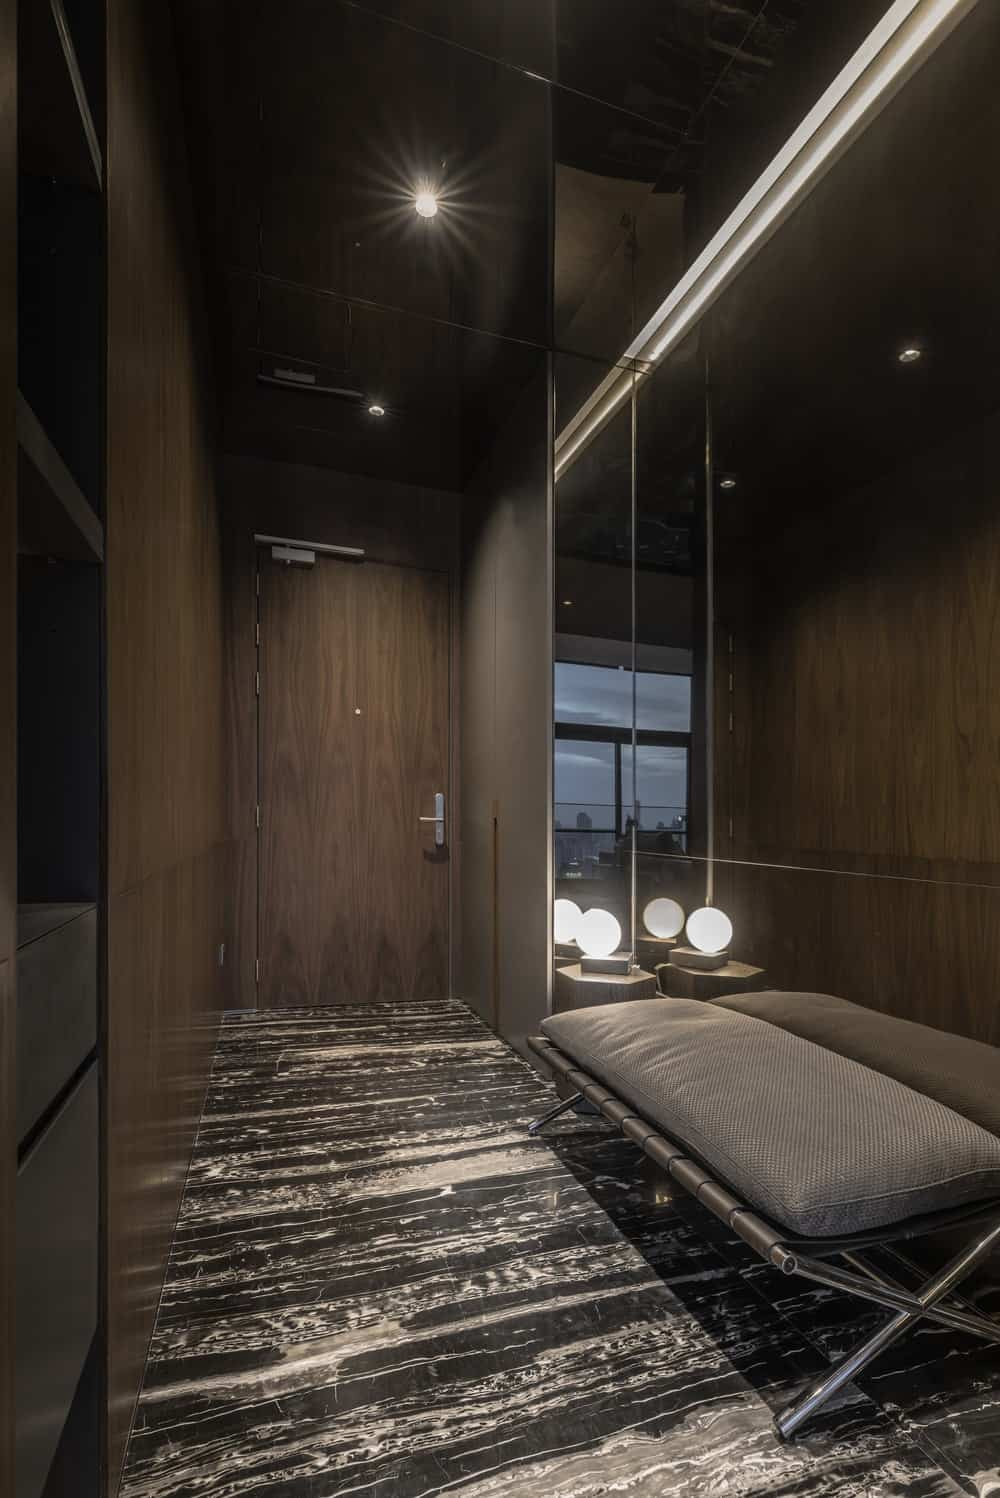 This is the hallway leading to the bathroom with a gray sofa on the mirrored wall.